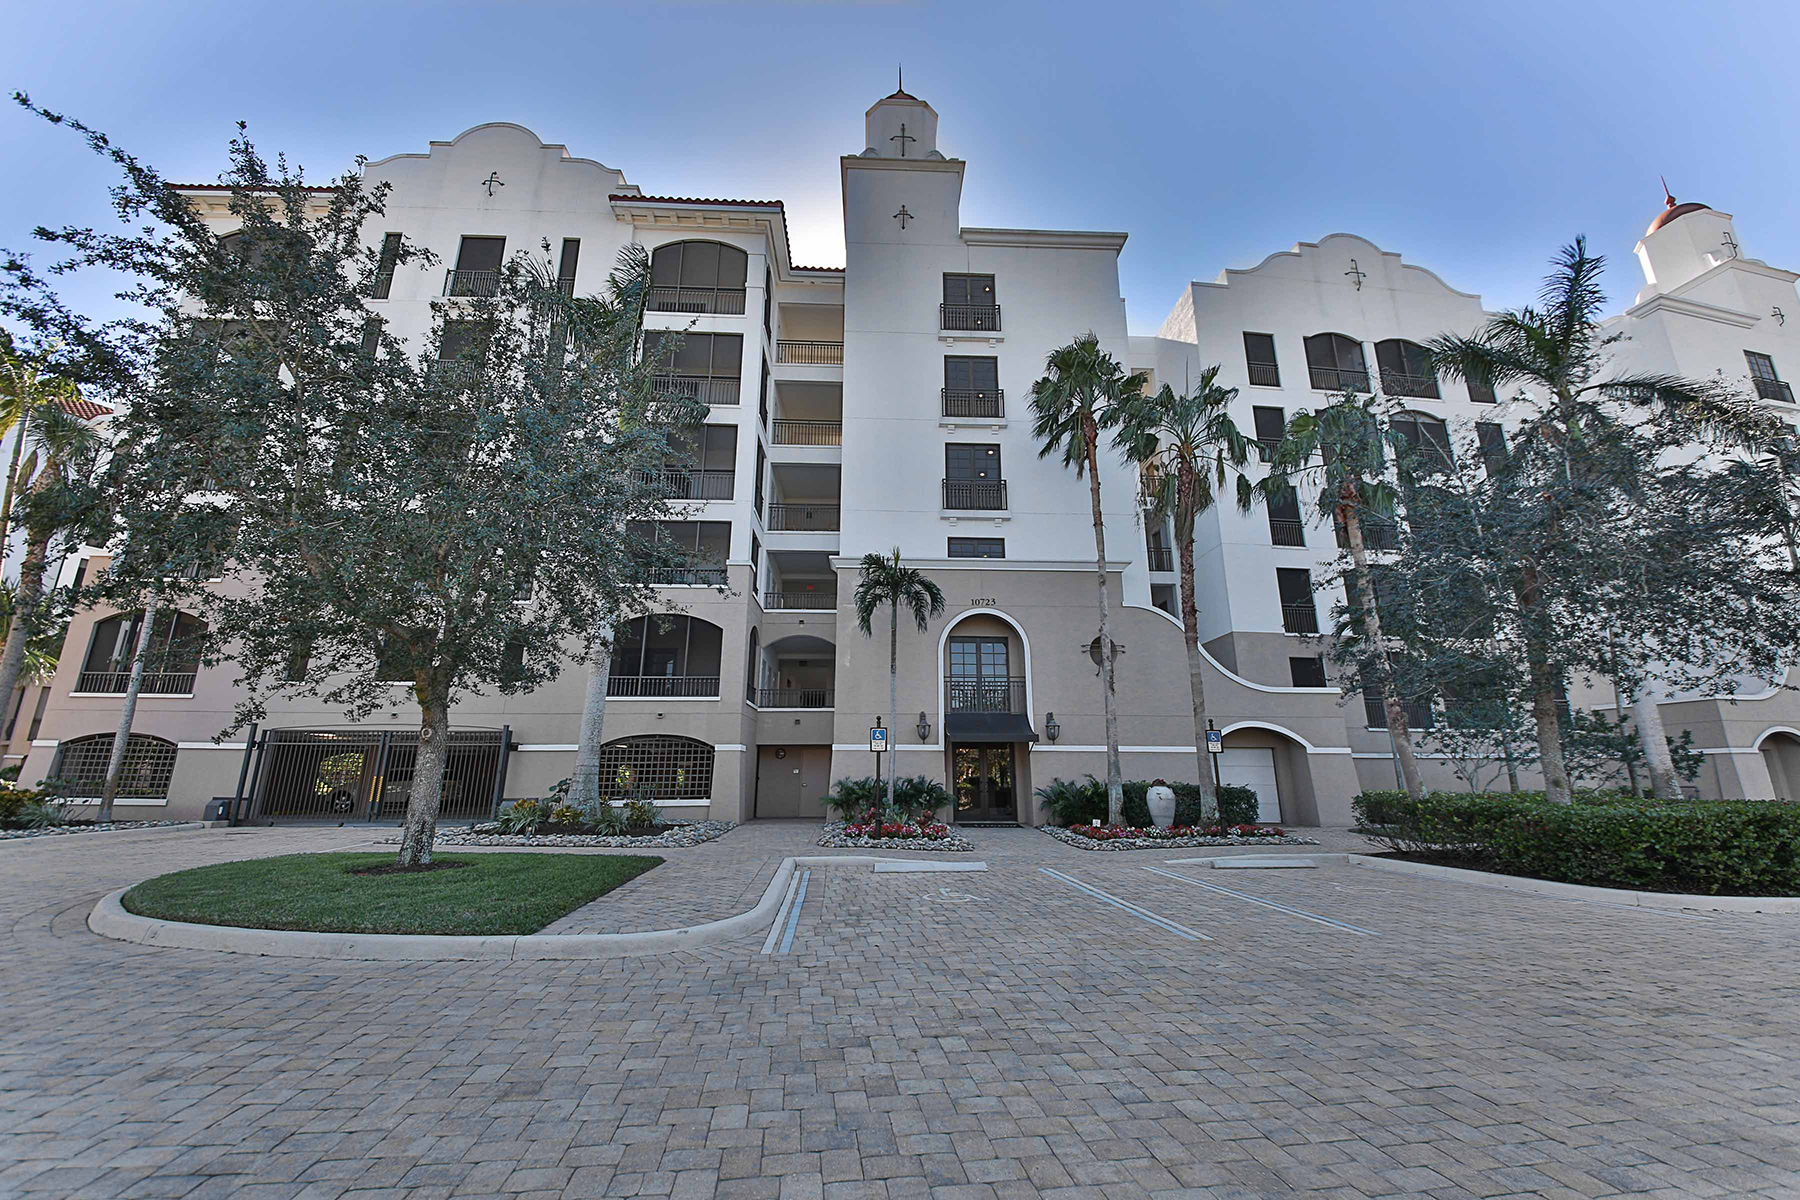 Condominium for Sale at MIROMAR LAKES - MIRASOL 10723 Mirasol Dr 607, Miromar Lakes, Florida 33913 United States